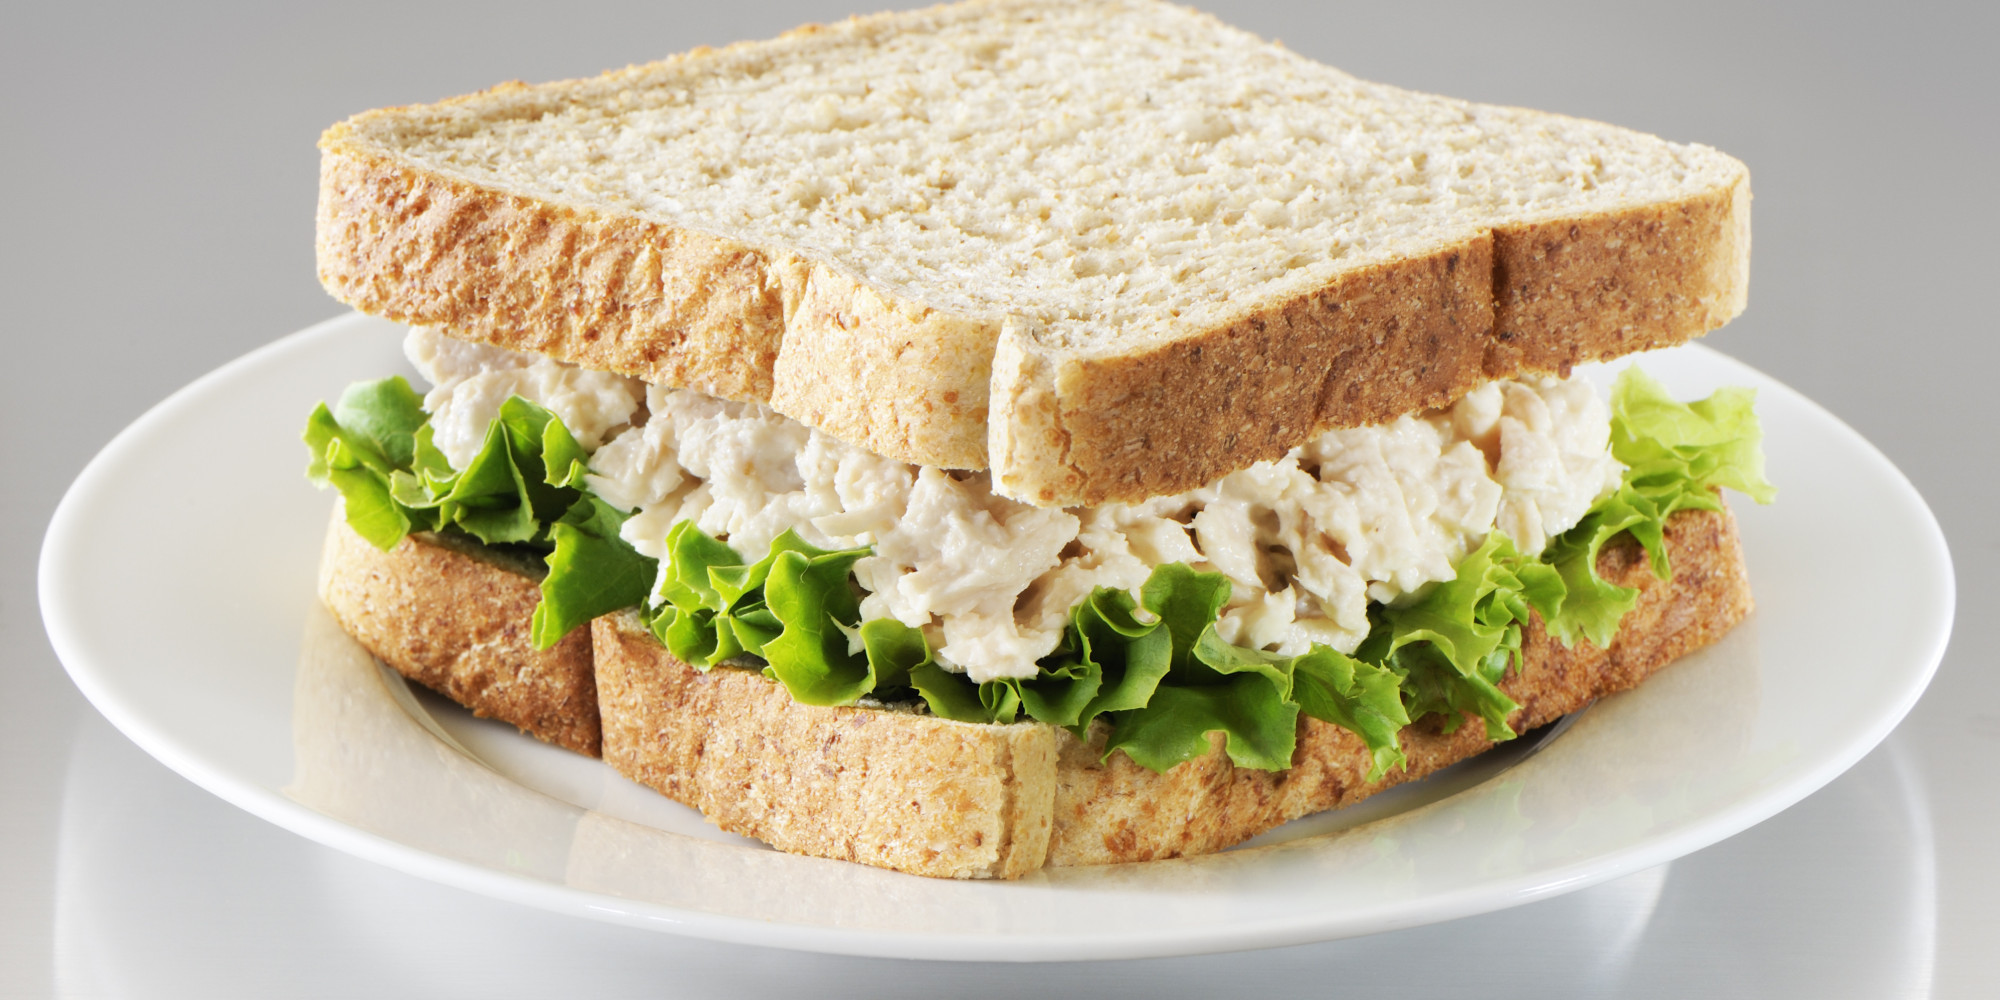 Free Tuna Sandwich Cliparts, Download Free Clip Art, Free.